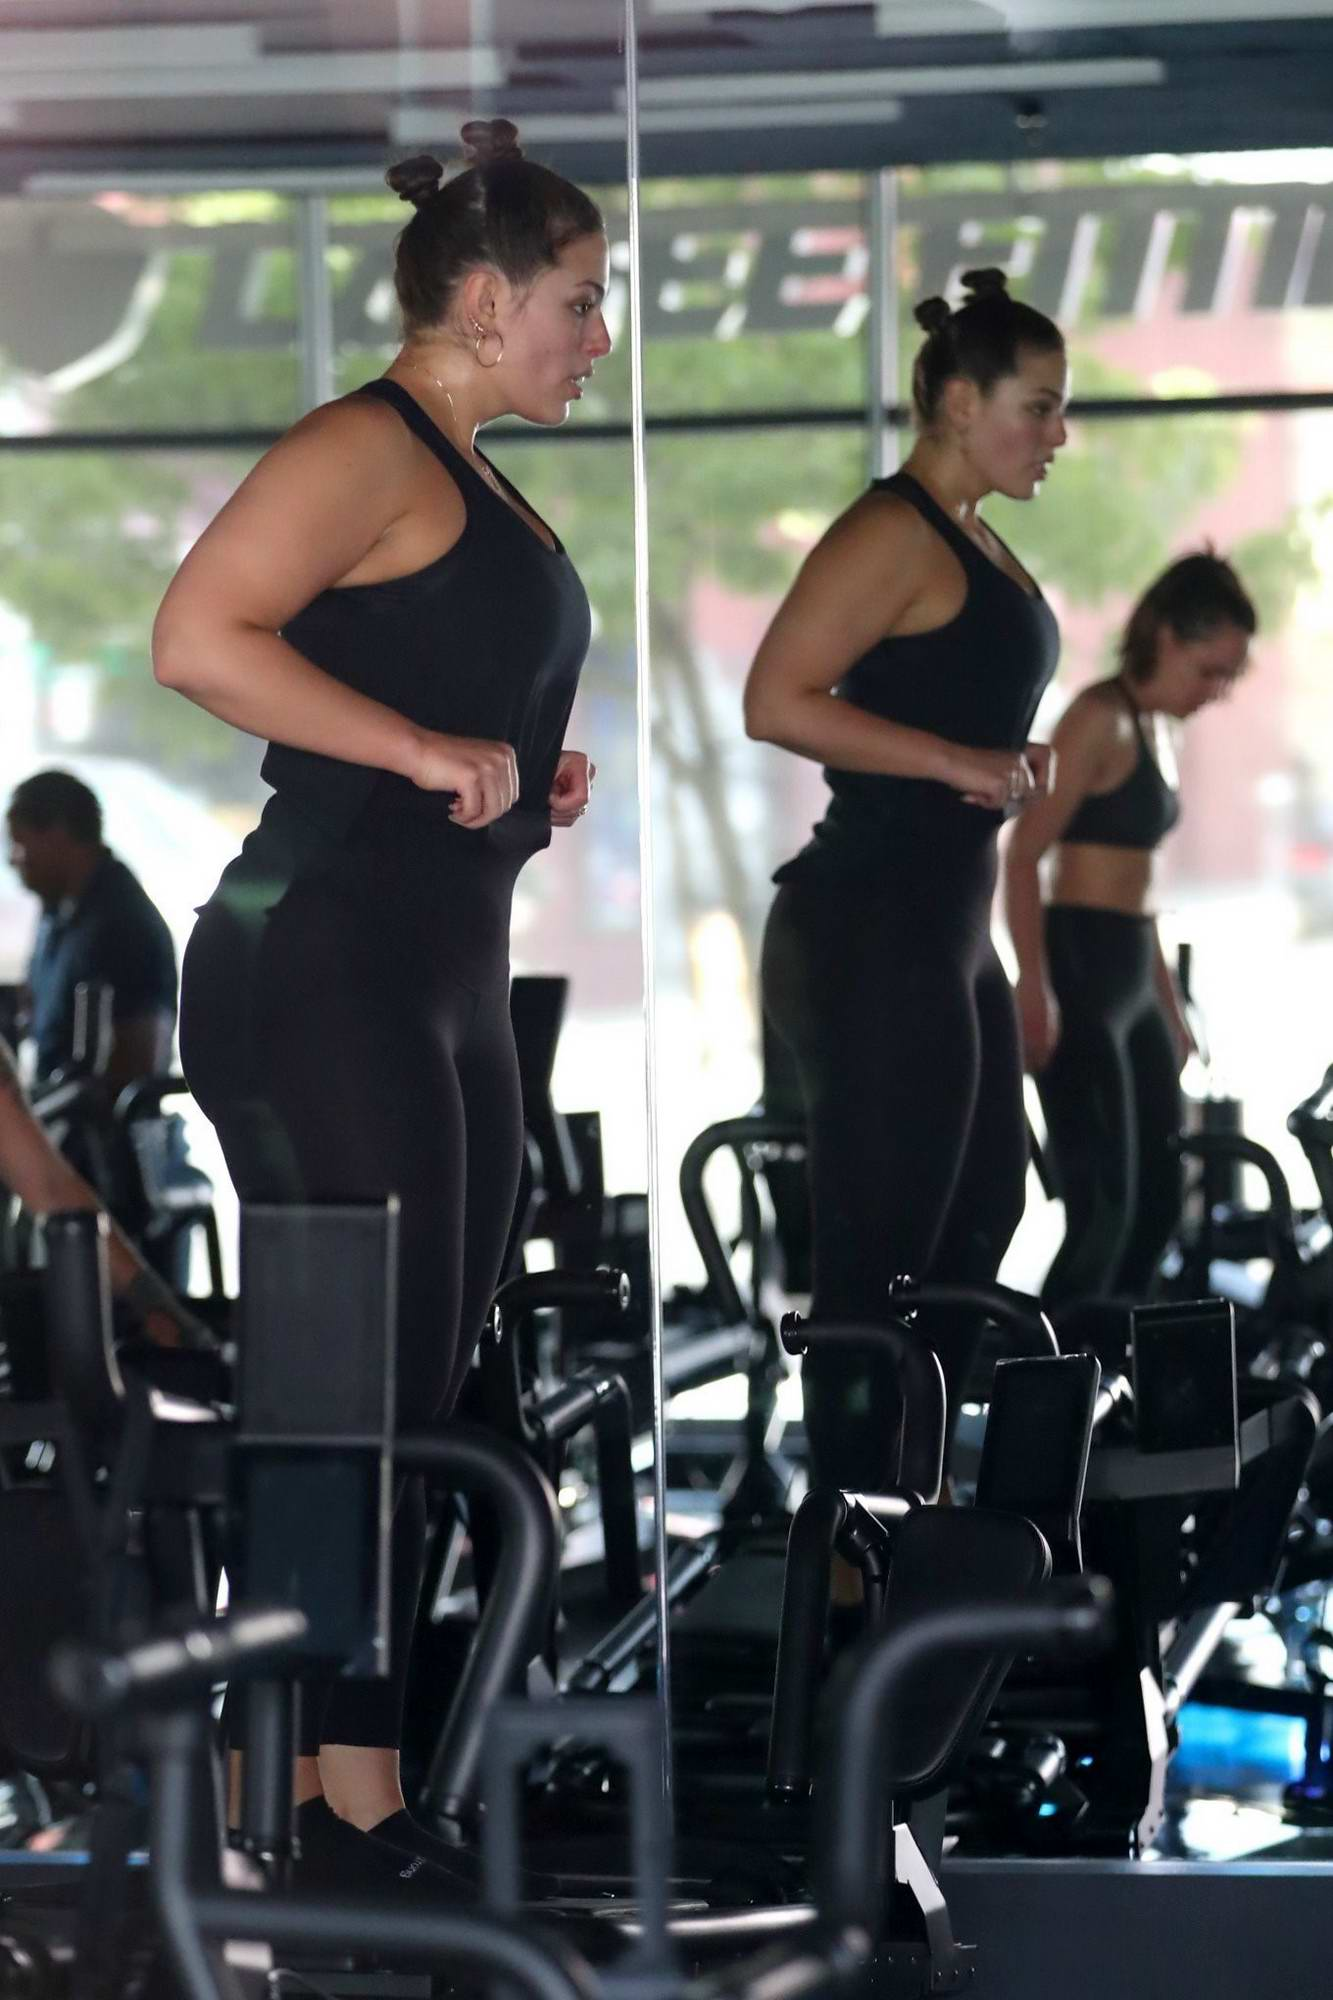 d36a03bab42f7 ashley graham working out in a gym with her husband-240517_12